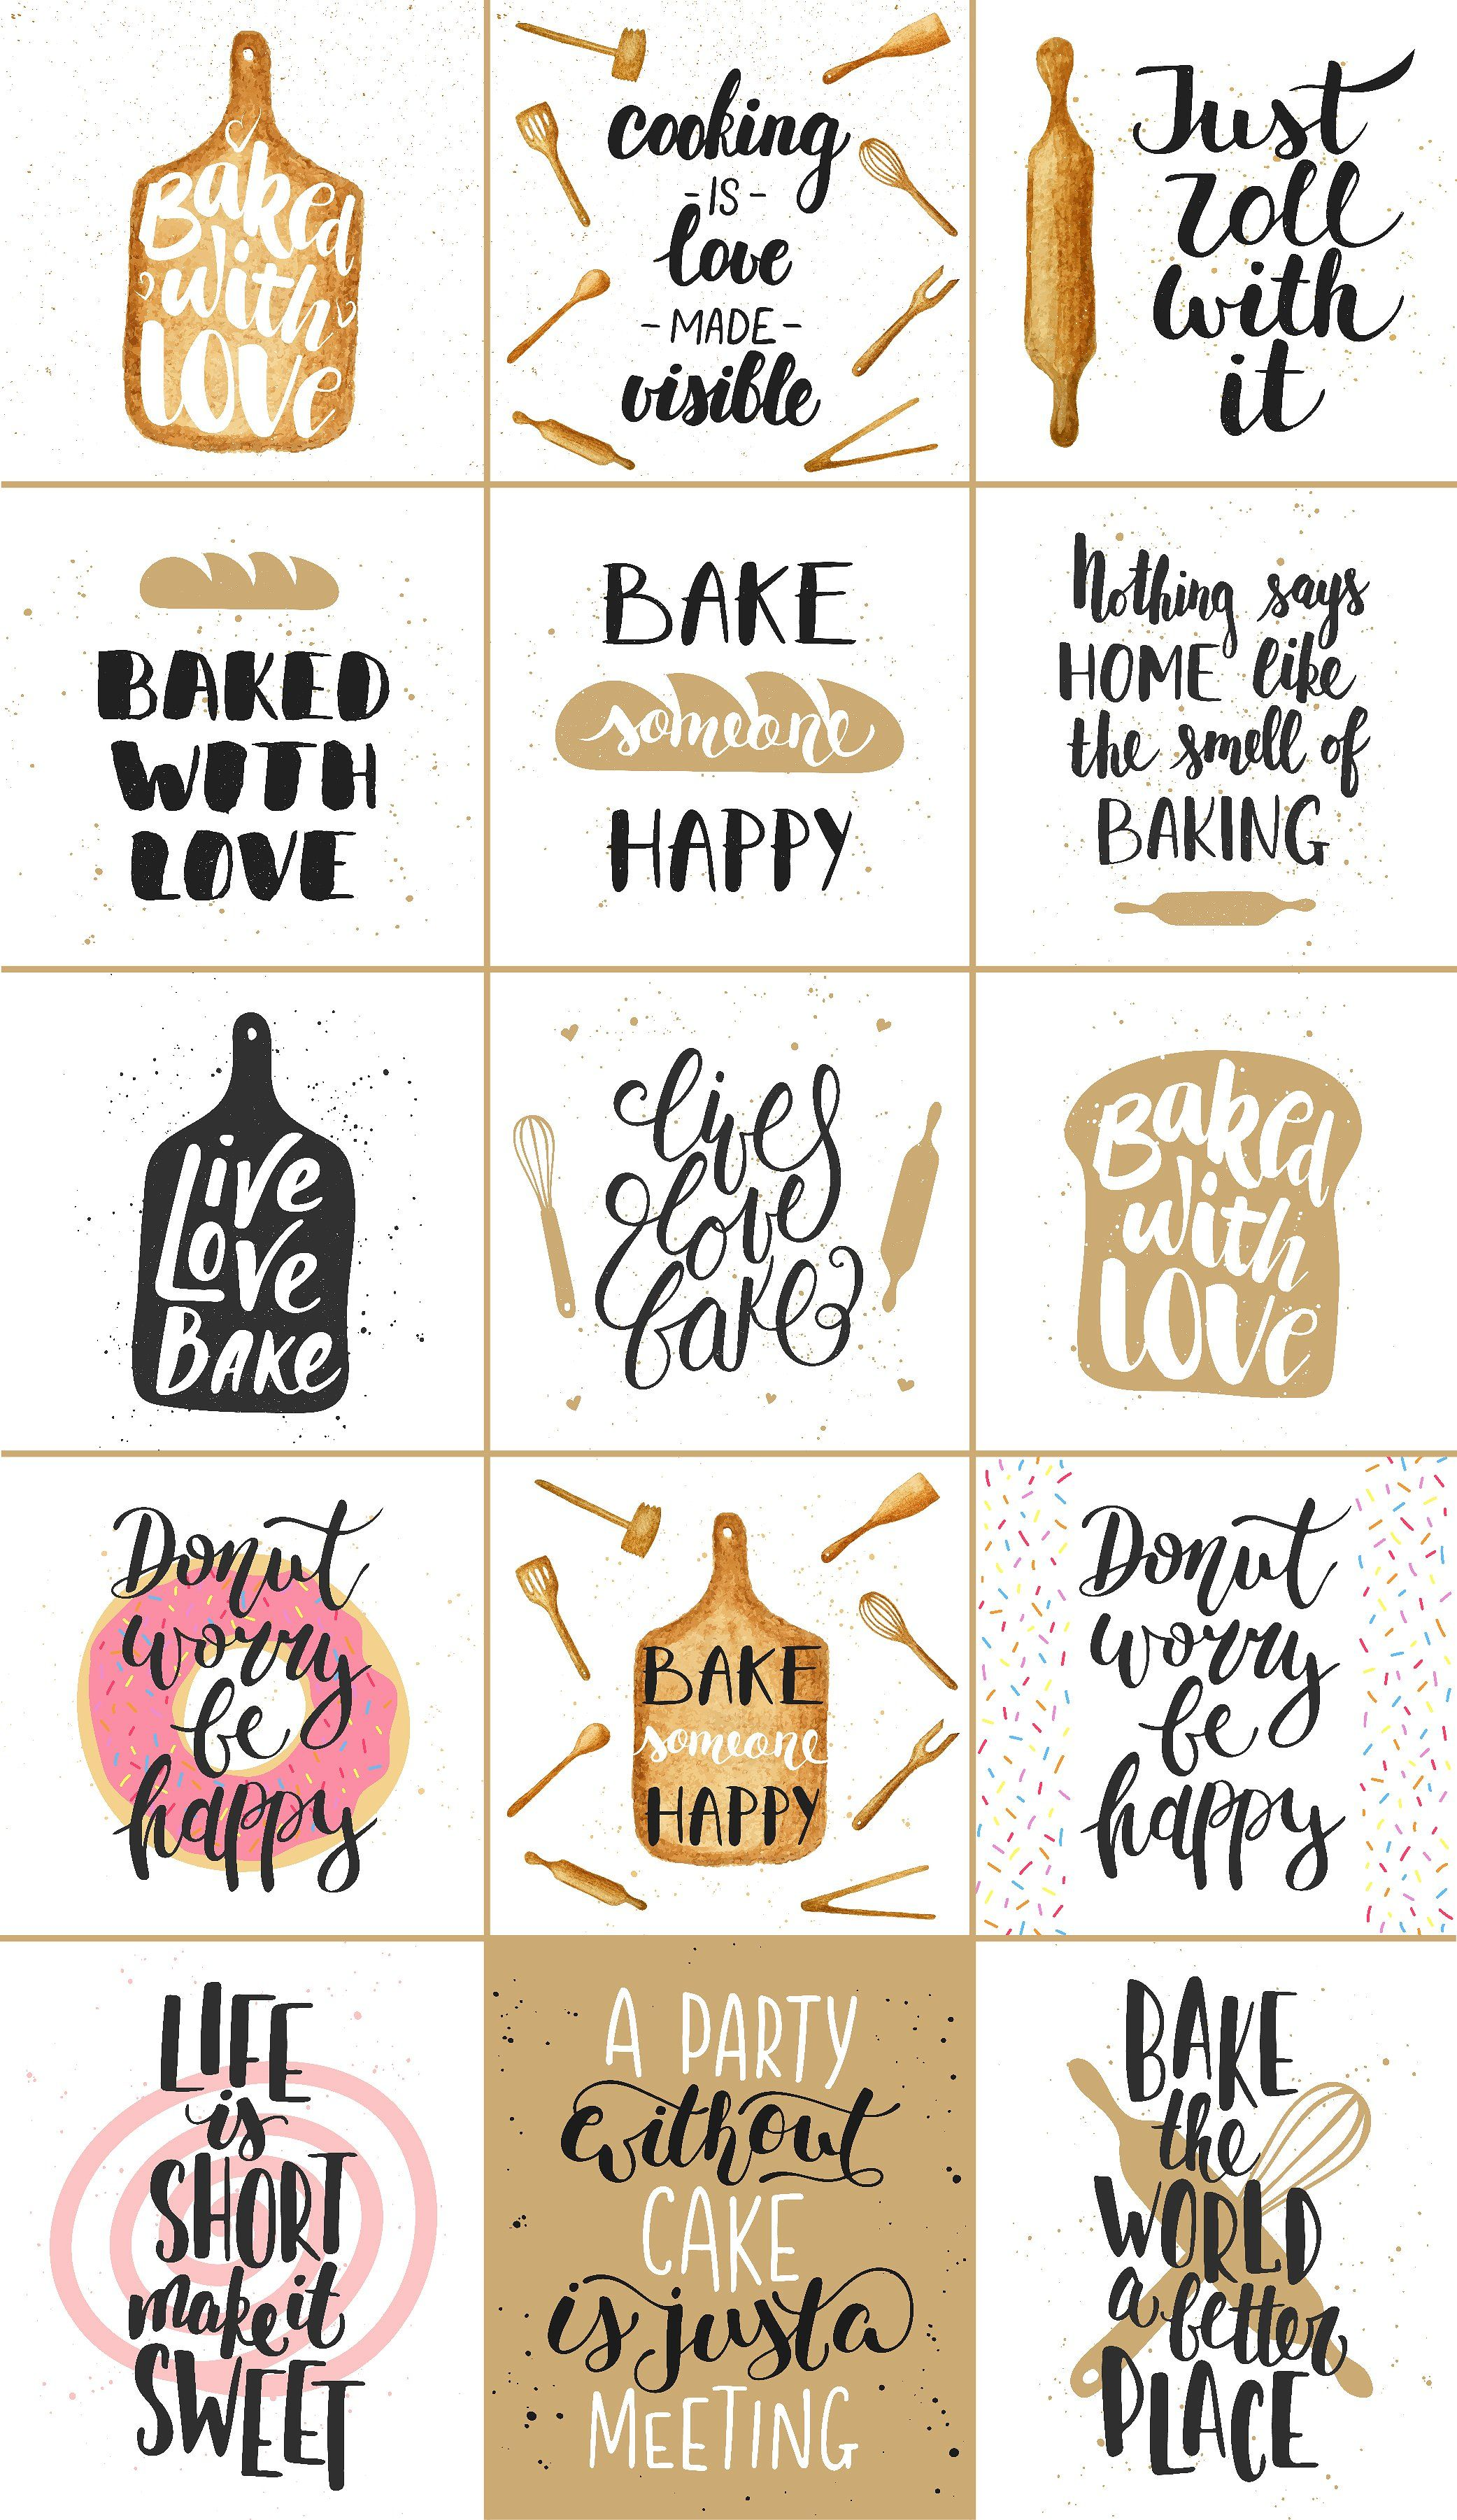 Bakery quotes and posters by Akimo Mia on creativemarket